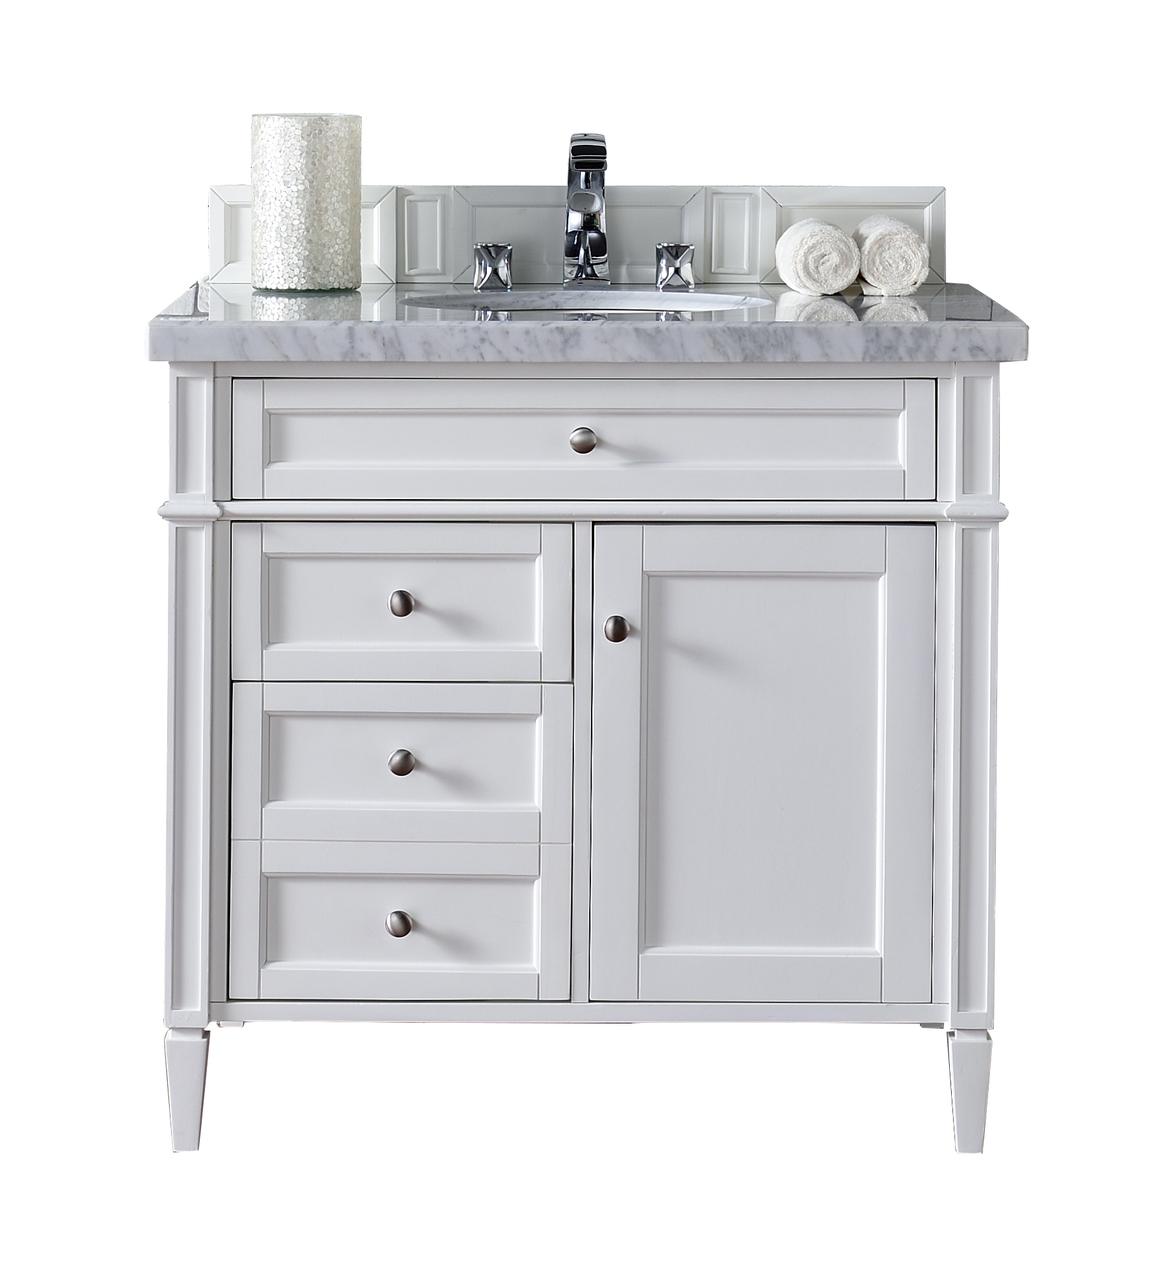 Contemporary Bathroom Vanities 36 Inch contemporary 36 inch single bathroom vanity white finish, no top